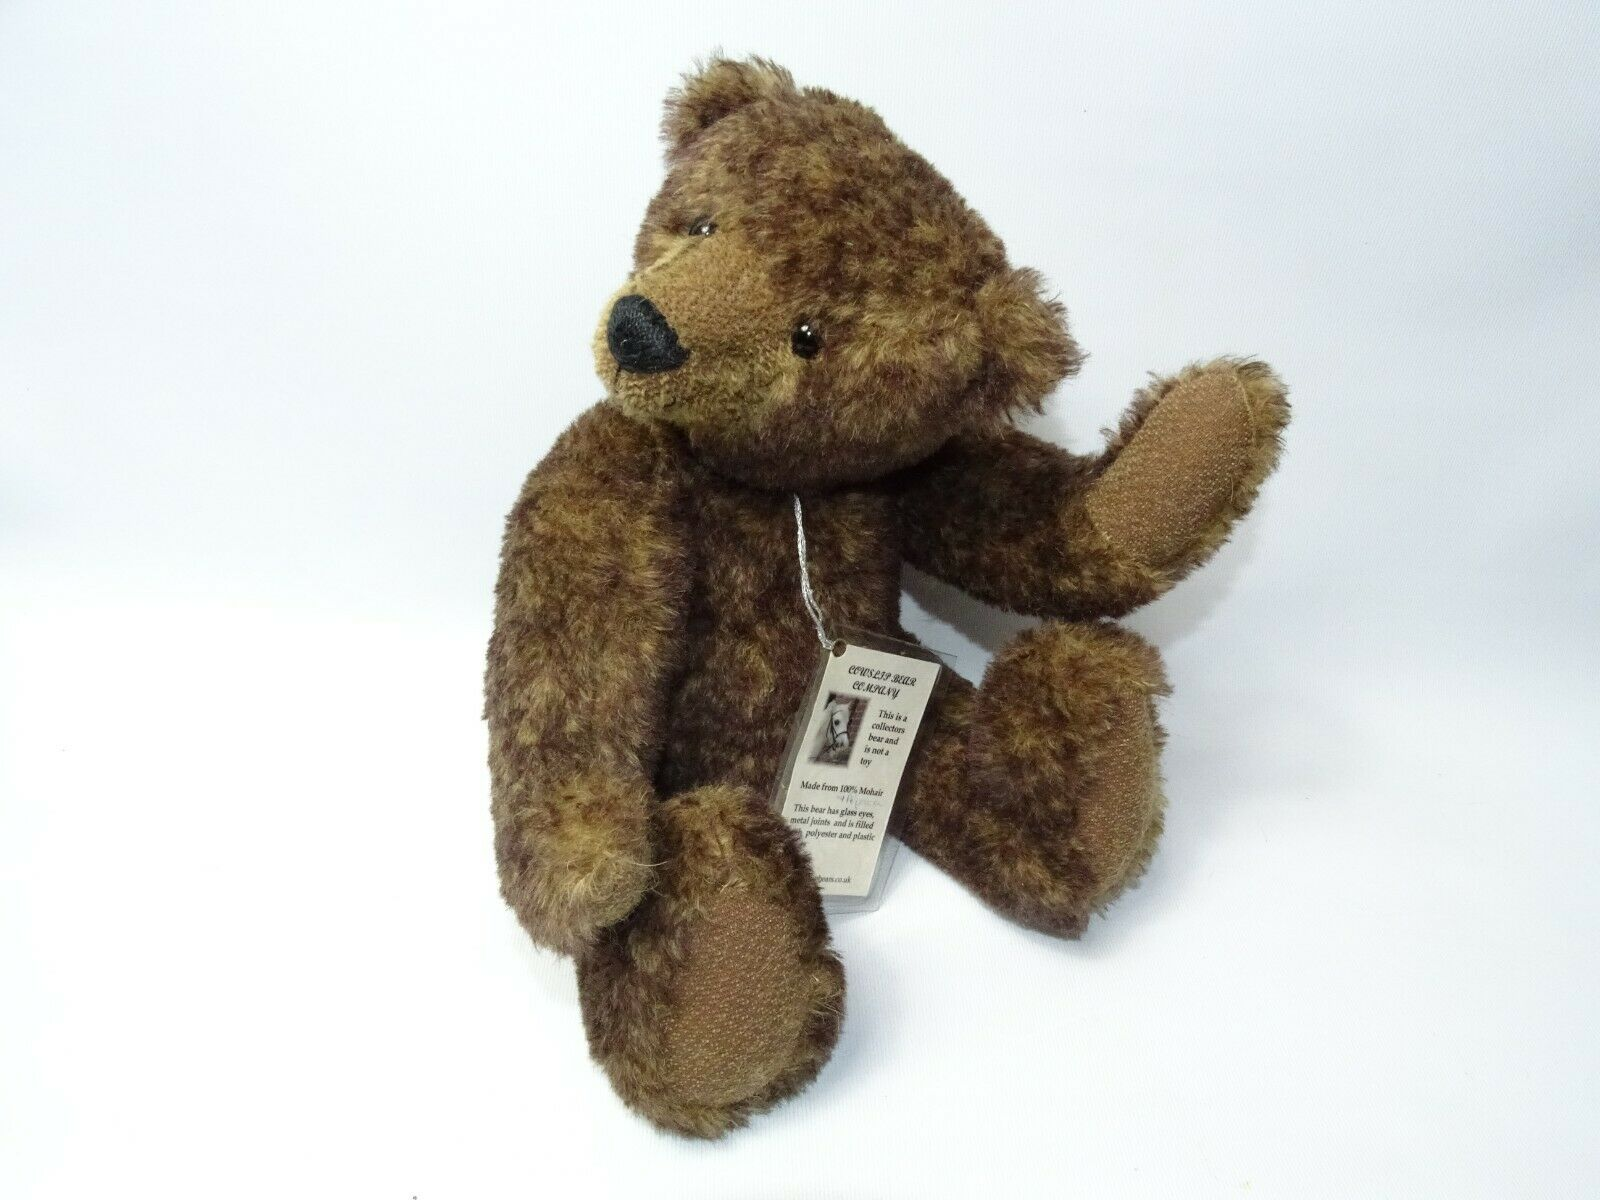 OOAK Artist Made 2003 Mohair Teddy Bear 14  by Christine Of Cowslip bears 1of1